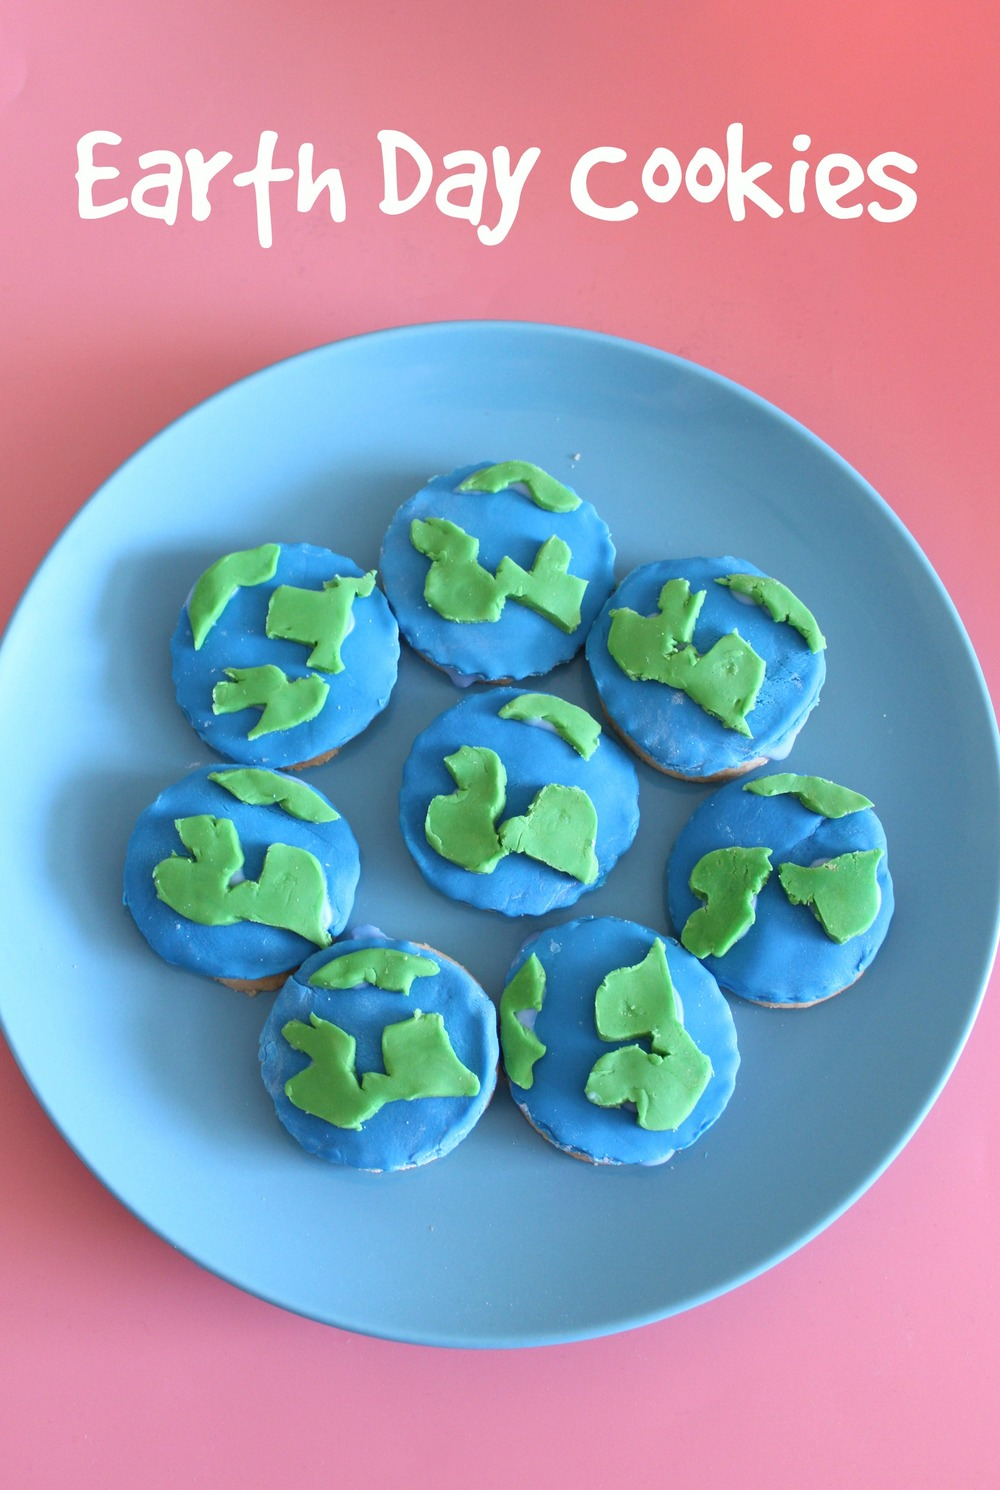 how to make earth day cookies